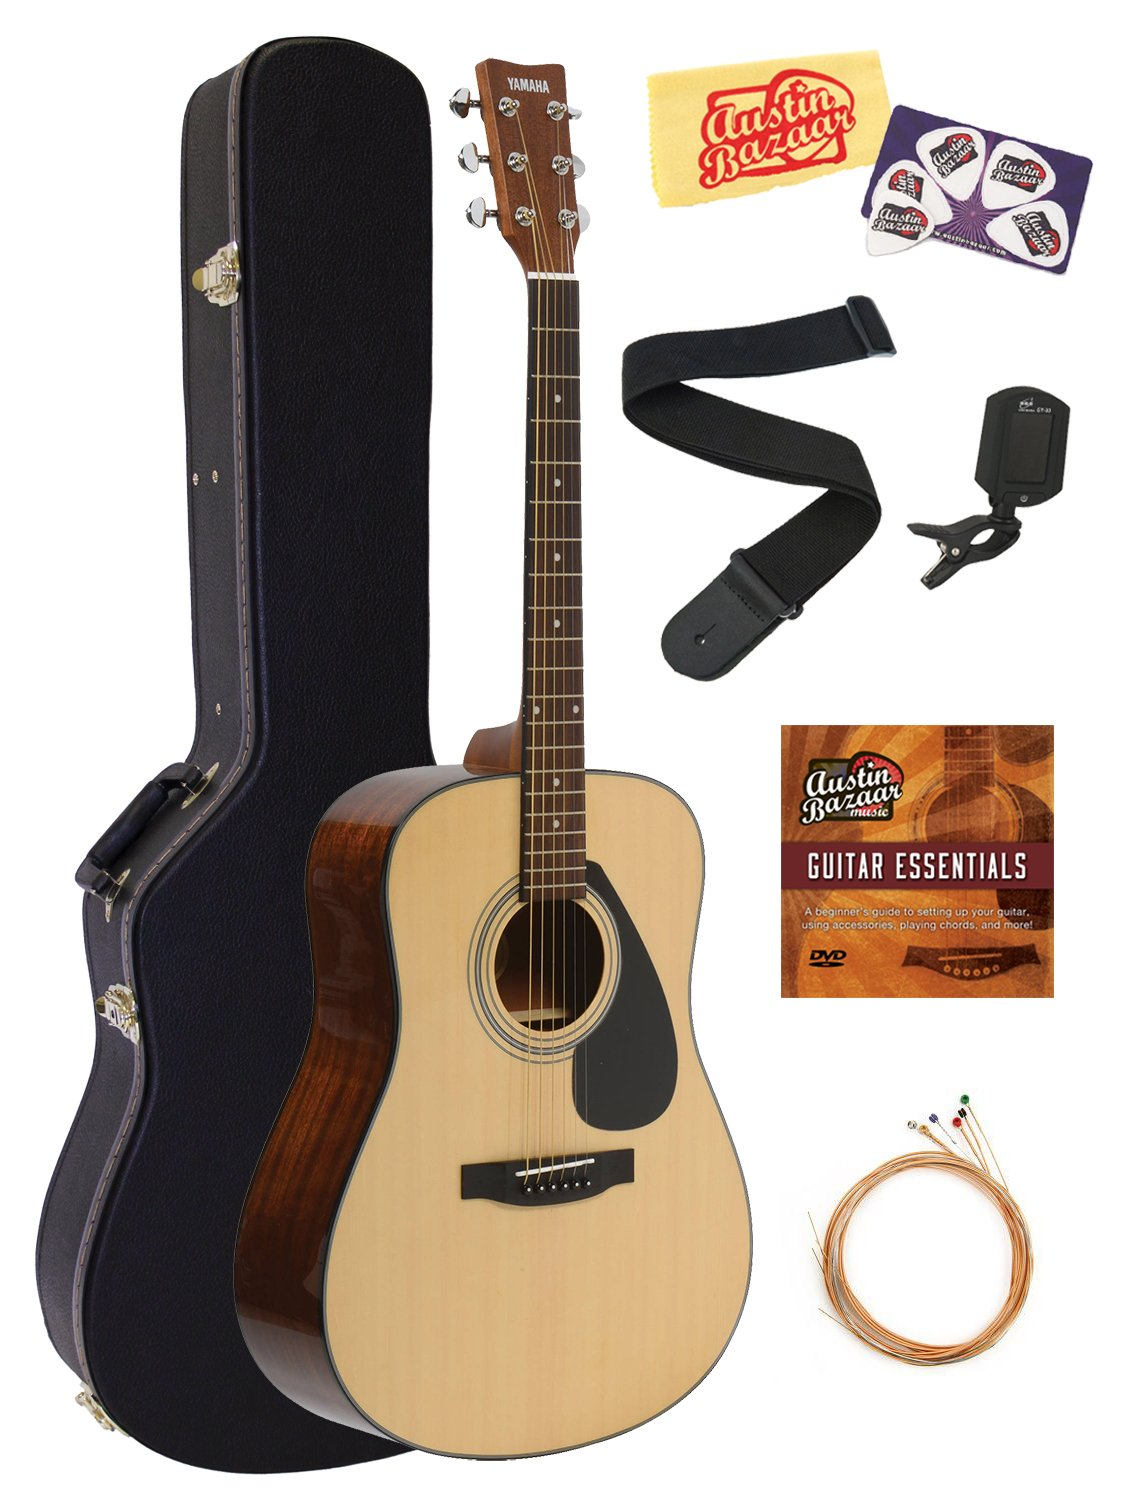 fender-yamaha-and-seagull-comparing-the-three-acoustic-guitar-brands-2